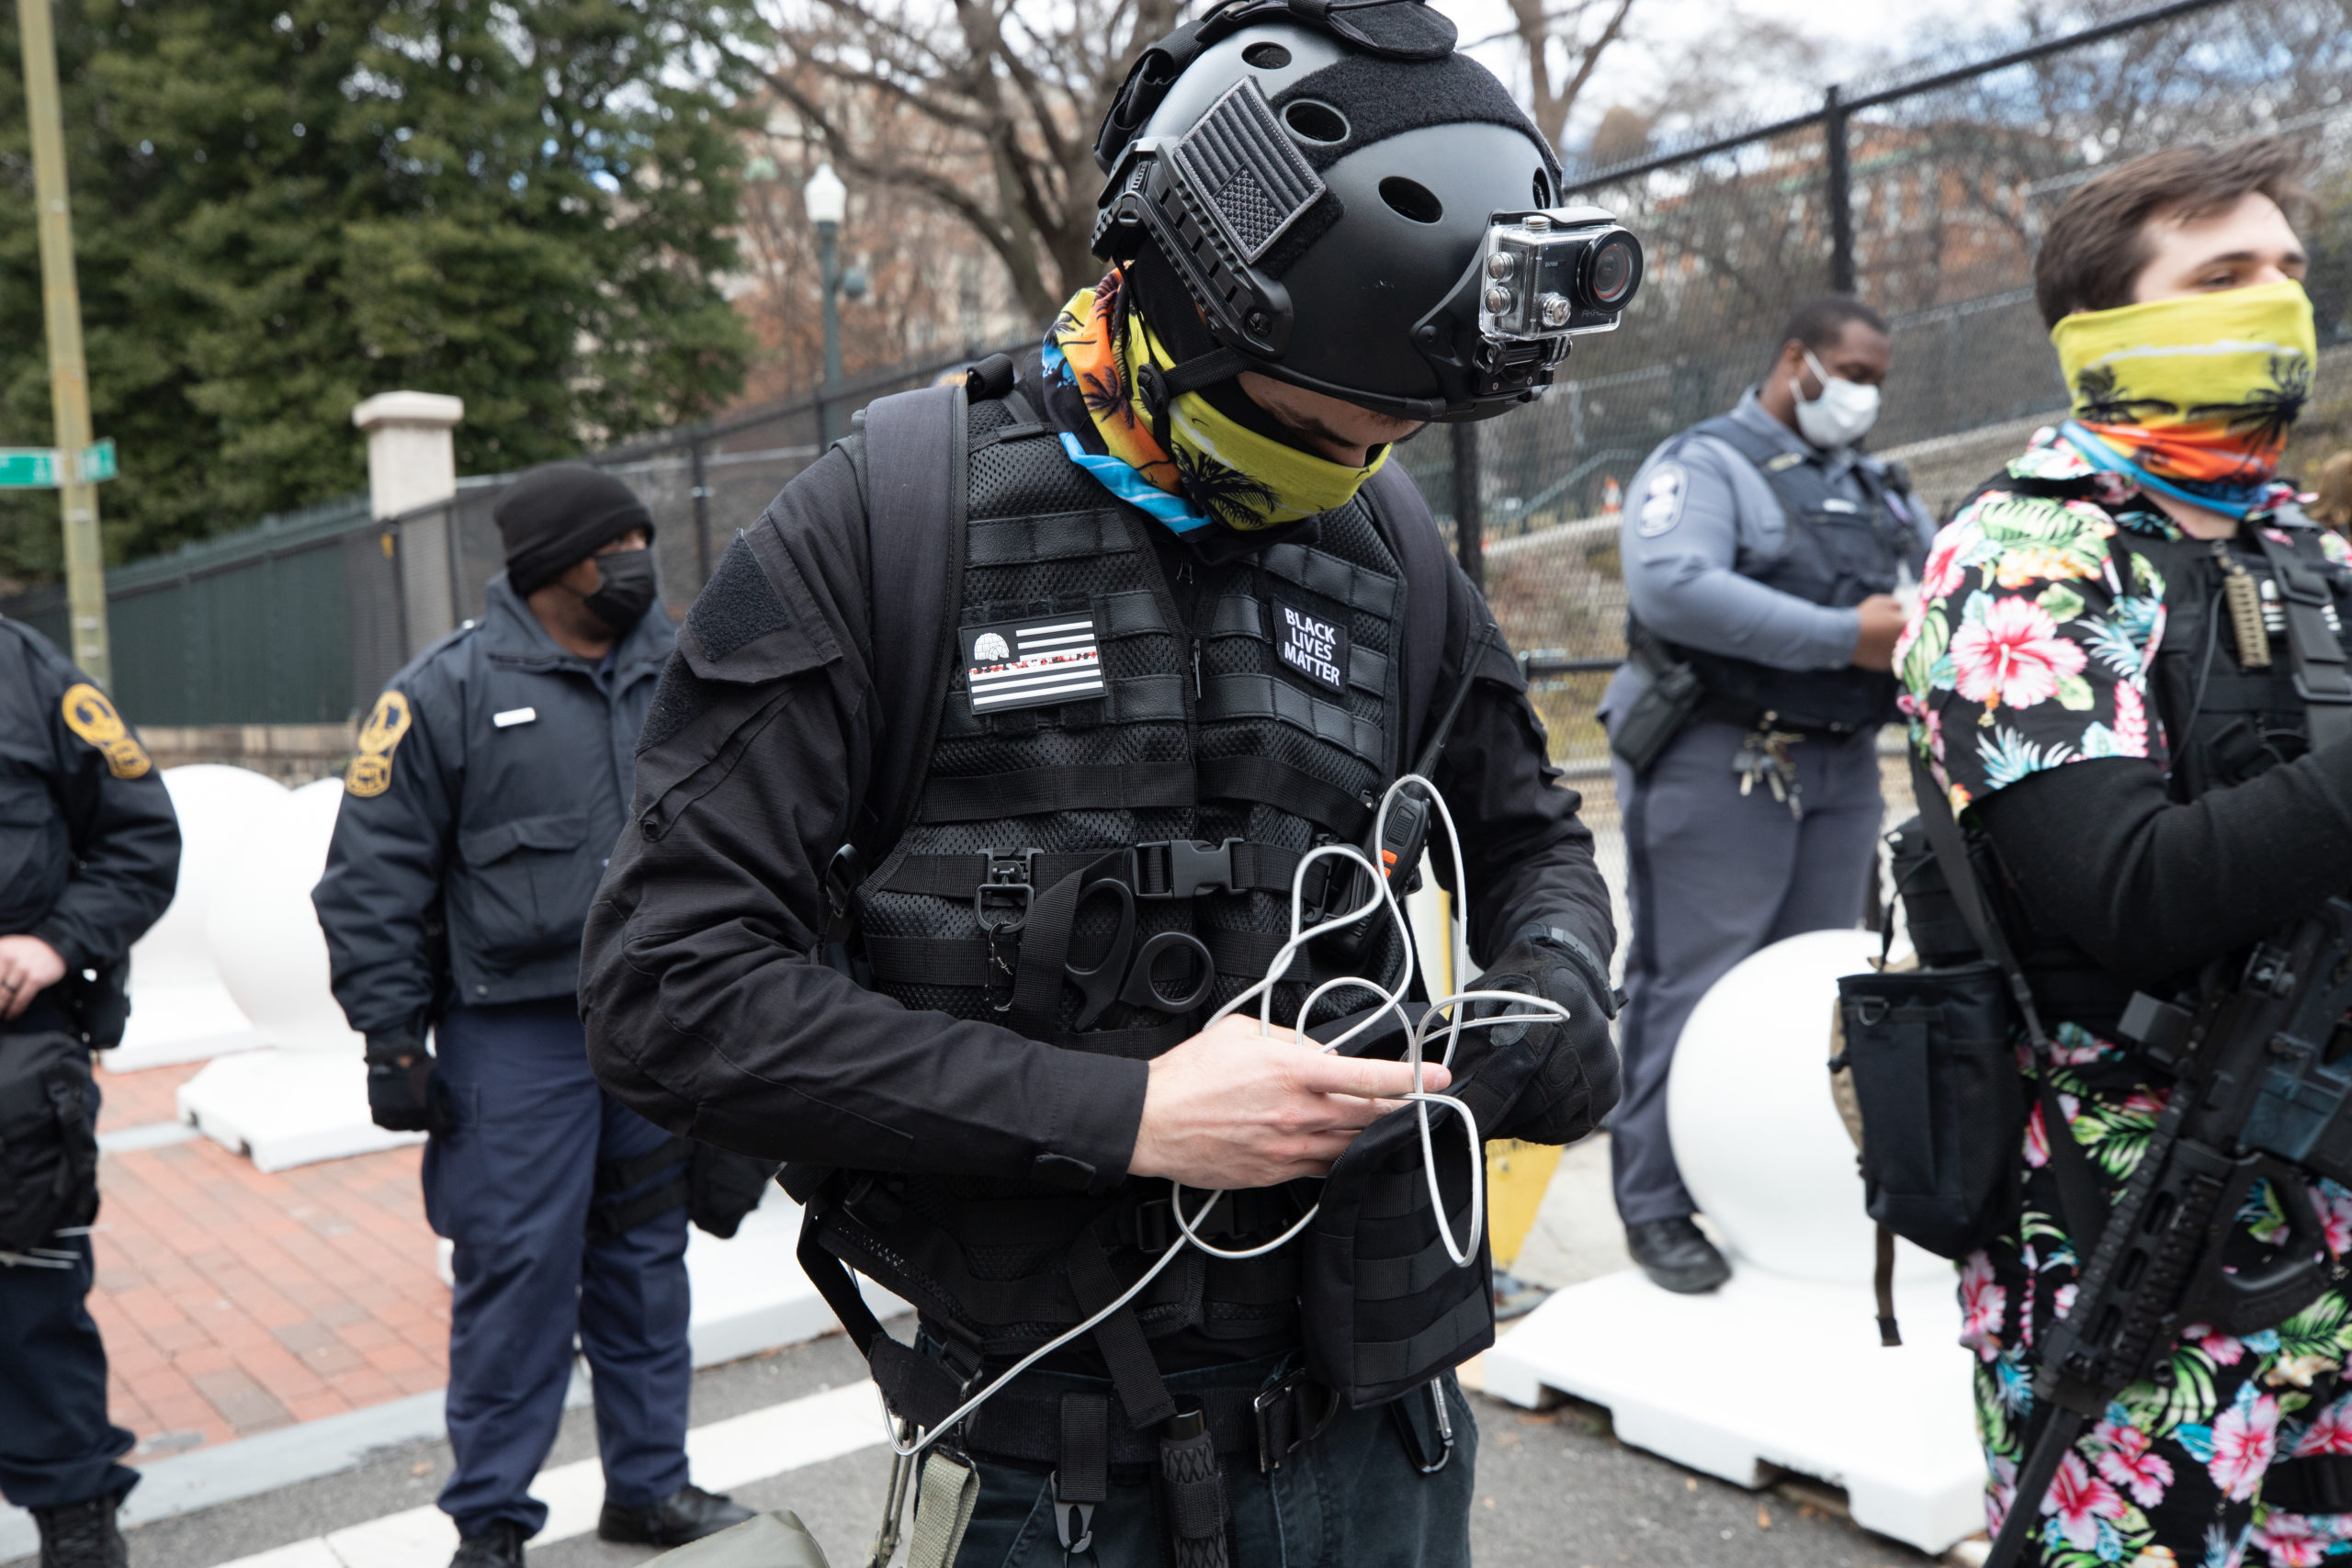 """A demonstrator standing in a line with the Boogaloo Bois wore a """"Black Lives Matter"""" patch on a tactical vest in Richmond, Virginia on January 18, 2021. (Kaylee Greenlee - Daily Caller News Foundation)"""